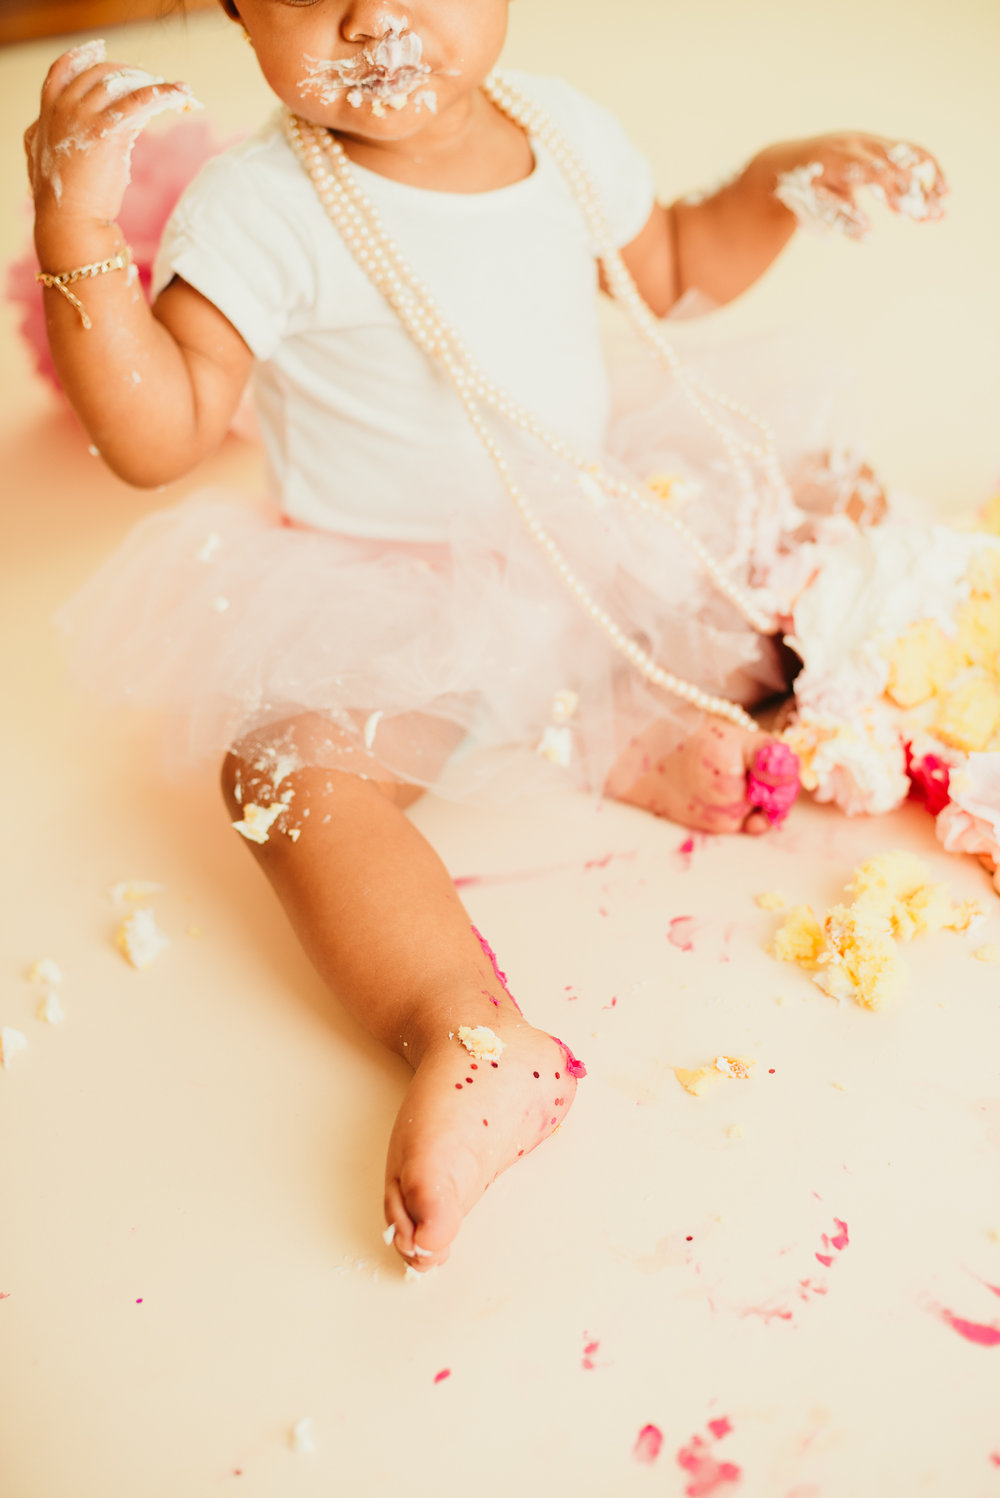 jade_girly_cake_smash_long_island_ny_photographer_portrait_photography-11.jpg